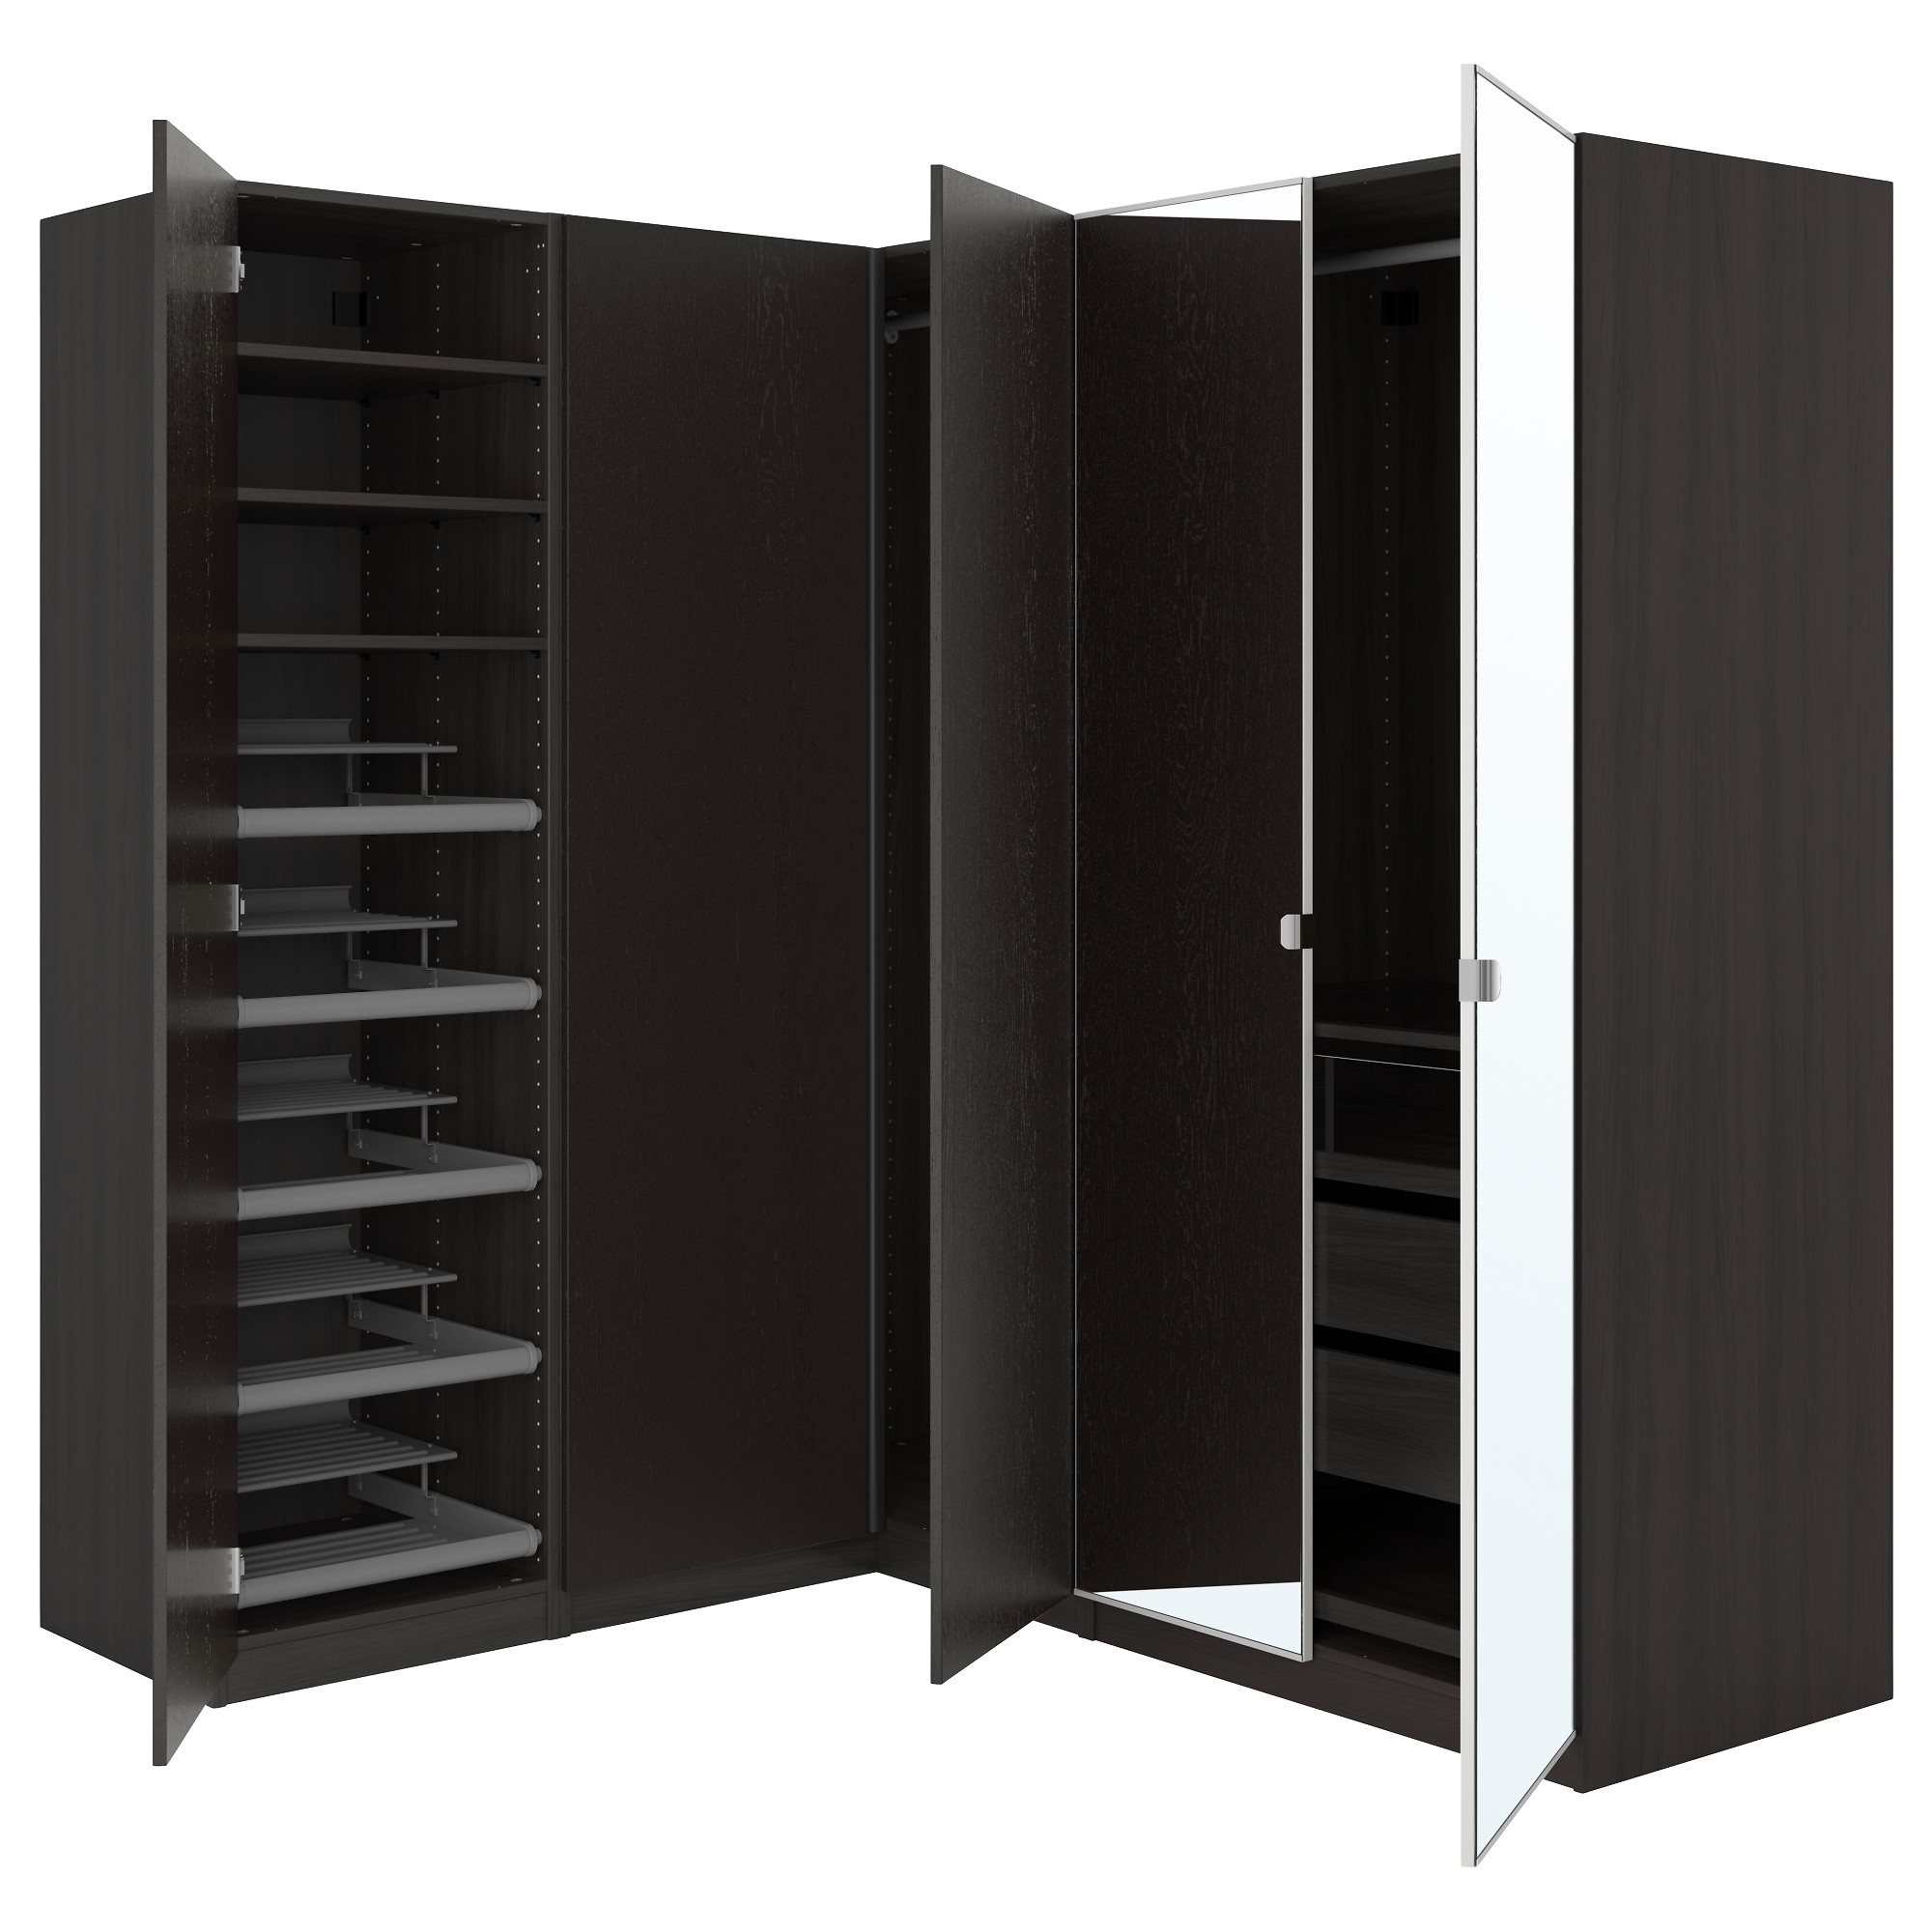 "Black Corner Wardrobes With Best And Newest Pax Corner Wardrobe – 82 3/4/63 1/8X93 1/8 "" – Ikea (View 5 of 15)"